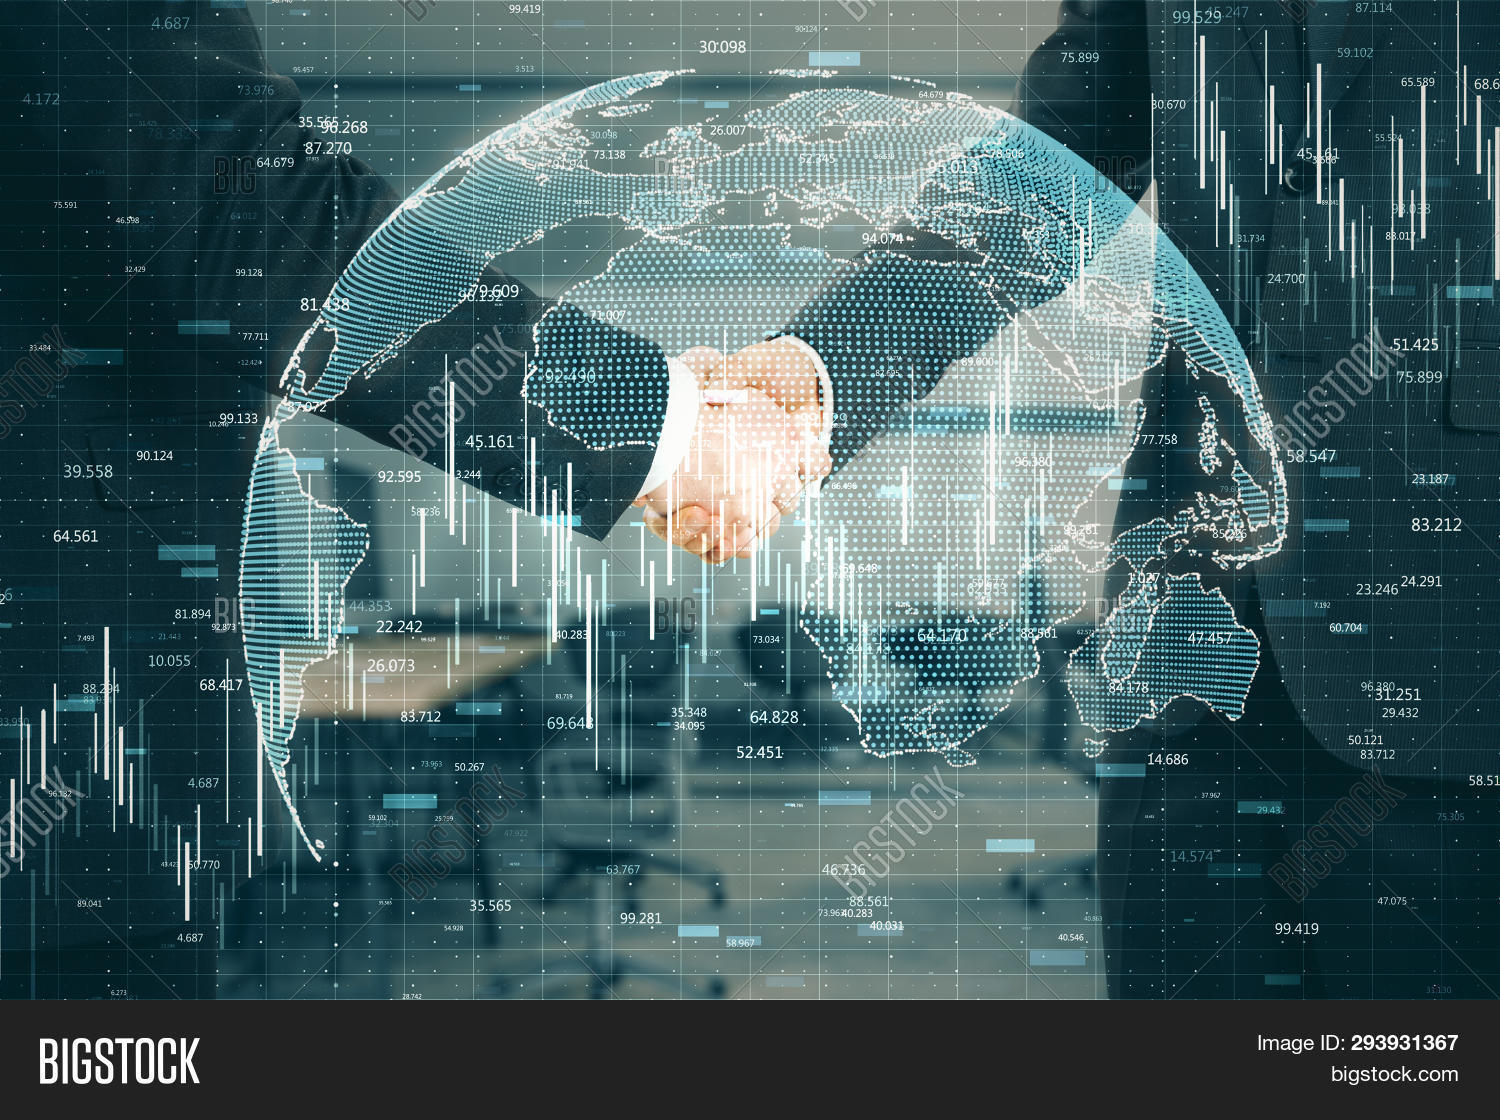 abstract,agreement,background,banking,blurry,business,businessmen,chart,communication,connection,data,diagram,distributed,double,exchange,exposure,financial,forex,global,globe,graph,greeting,grid,growth,hands,handshake,interior,investment,leadership,marketing,men,office,partnership,people,room,sale,shaking,sideview,stock,strategy,success,suit,team,teamwork,technology,trade,trading,two,unrecognizable,worldwide